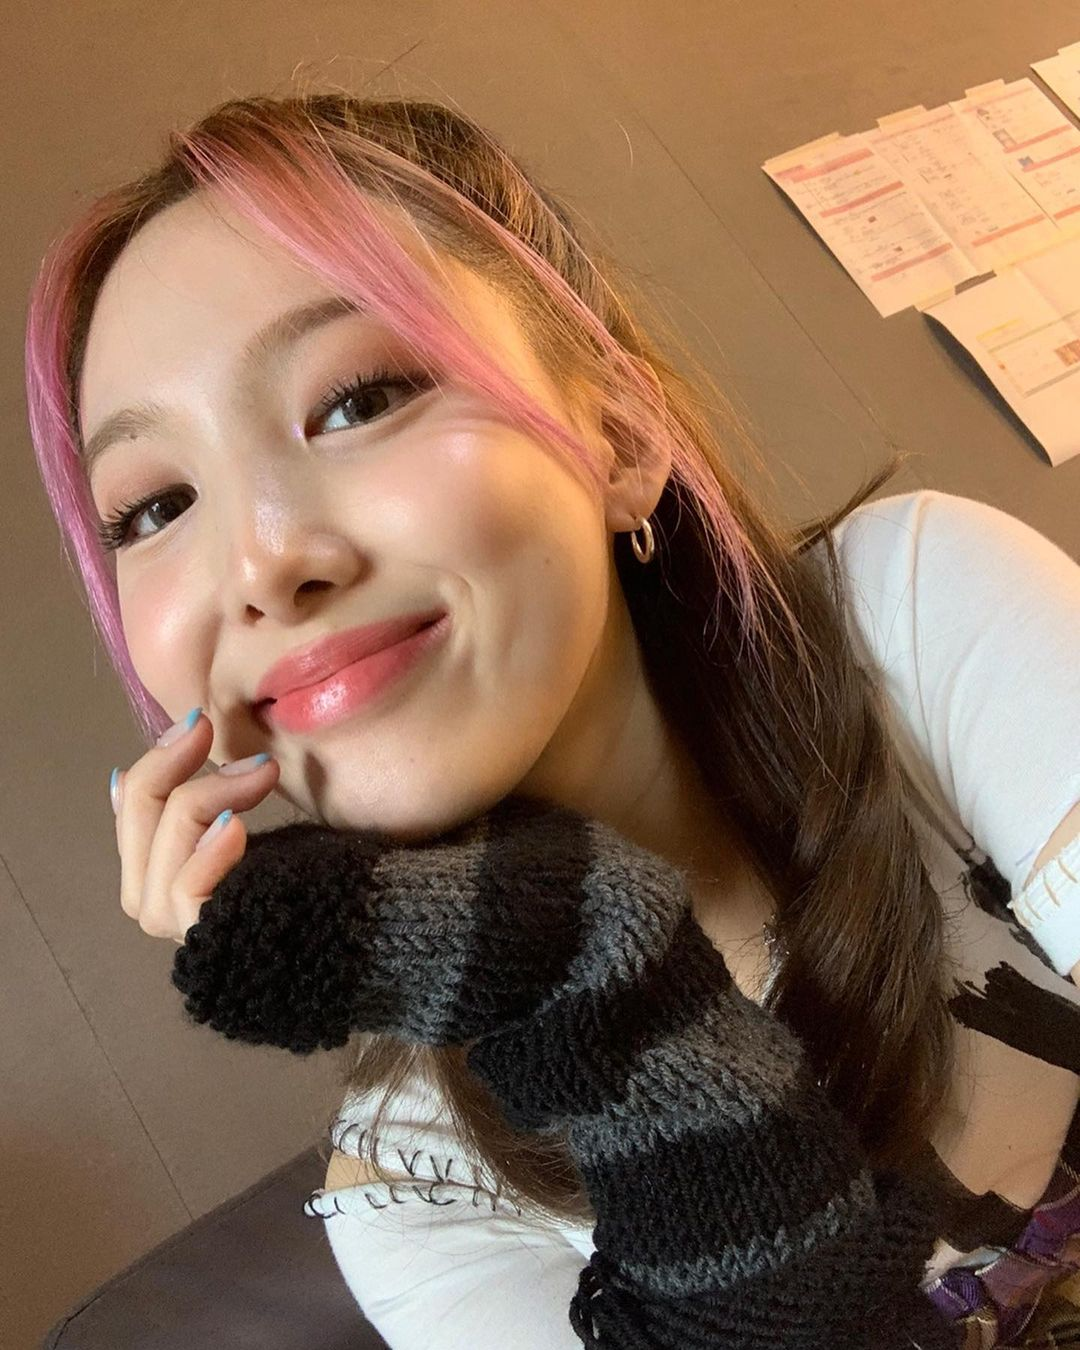 TWICE Nayeon, pink hair is pretty too